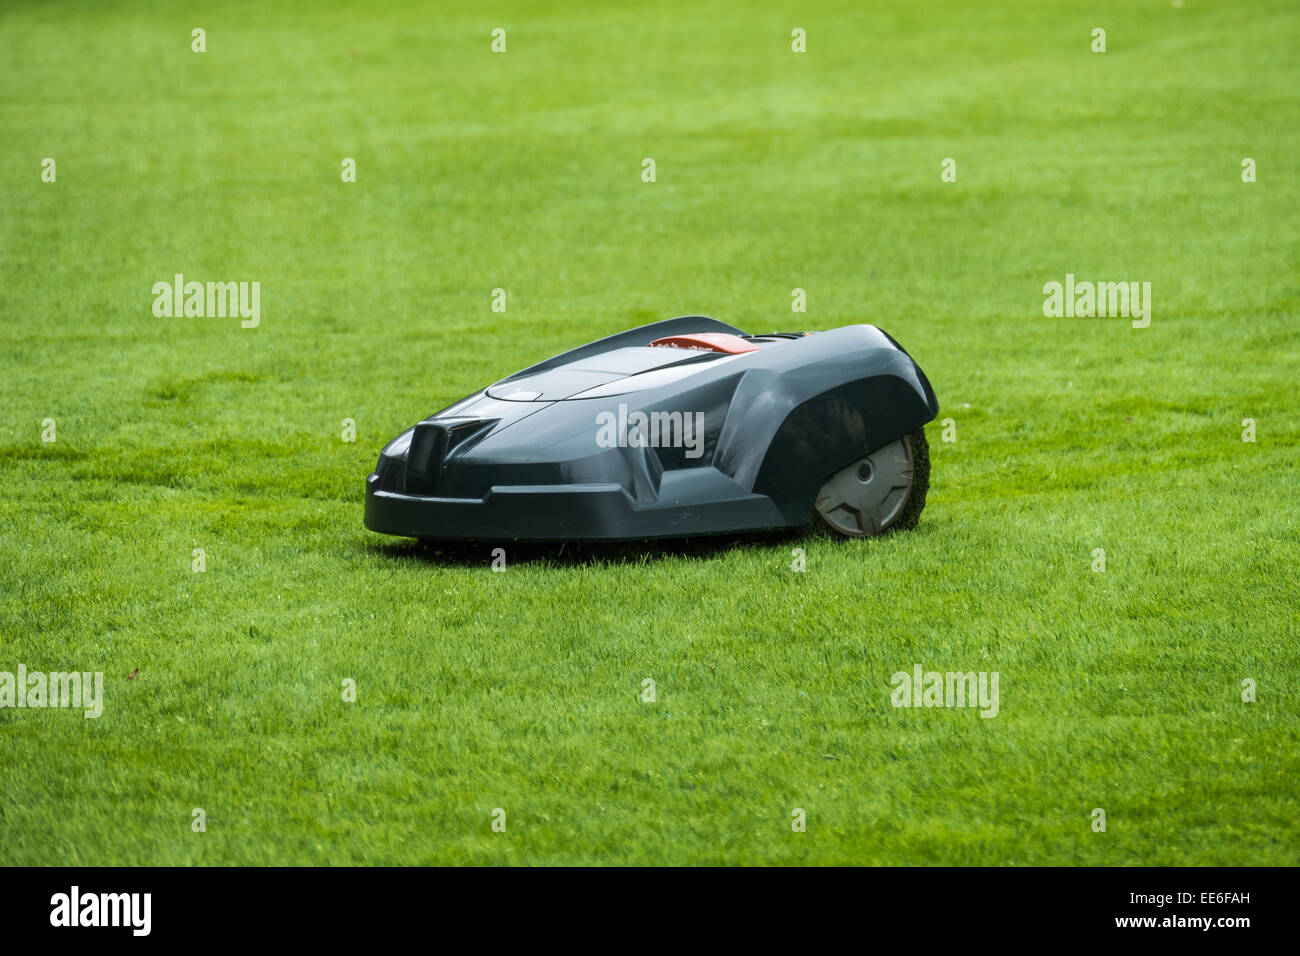 Robotic lawn mower on grass, side view - Stock Image